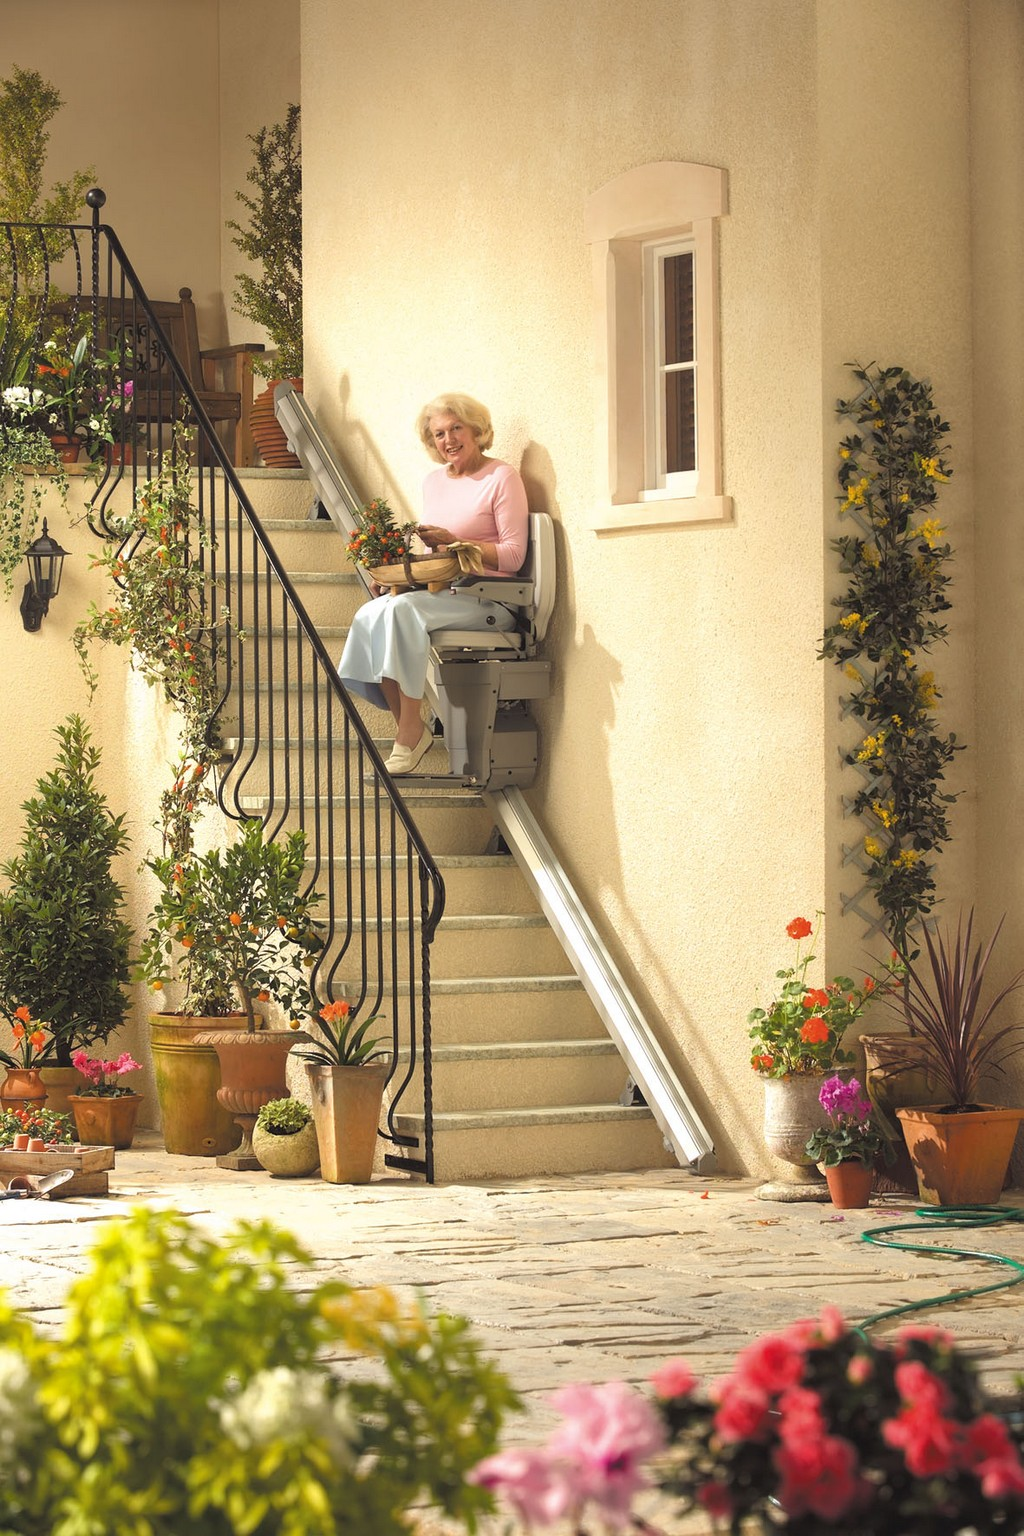 stair lifts, stair lifts used, reliable stair lifts, stair lift